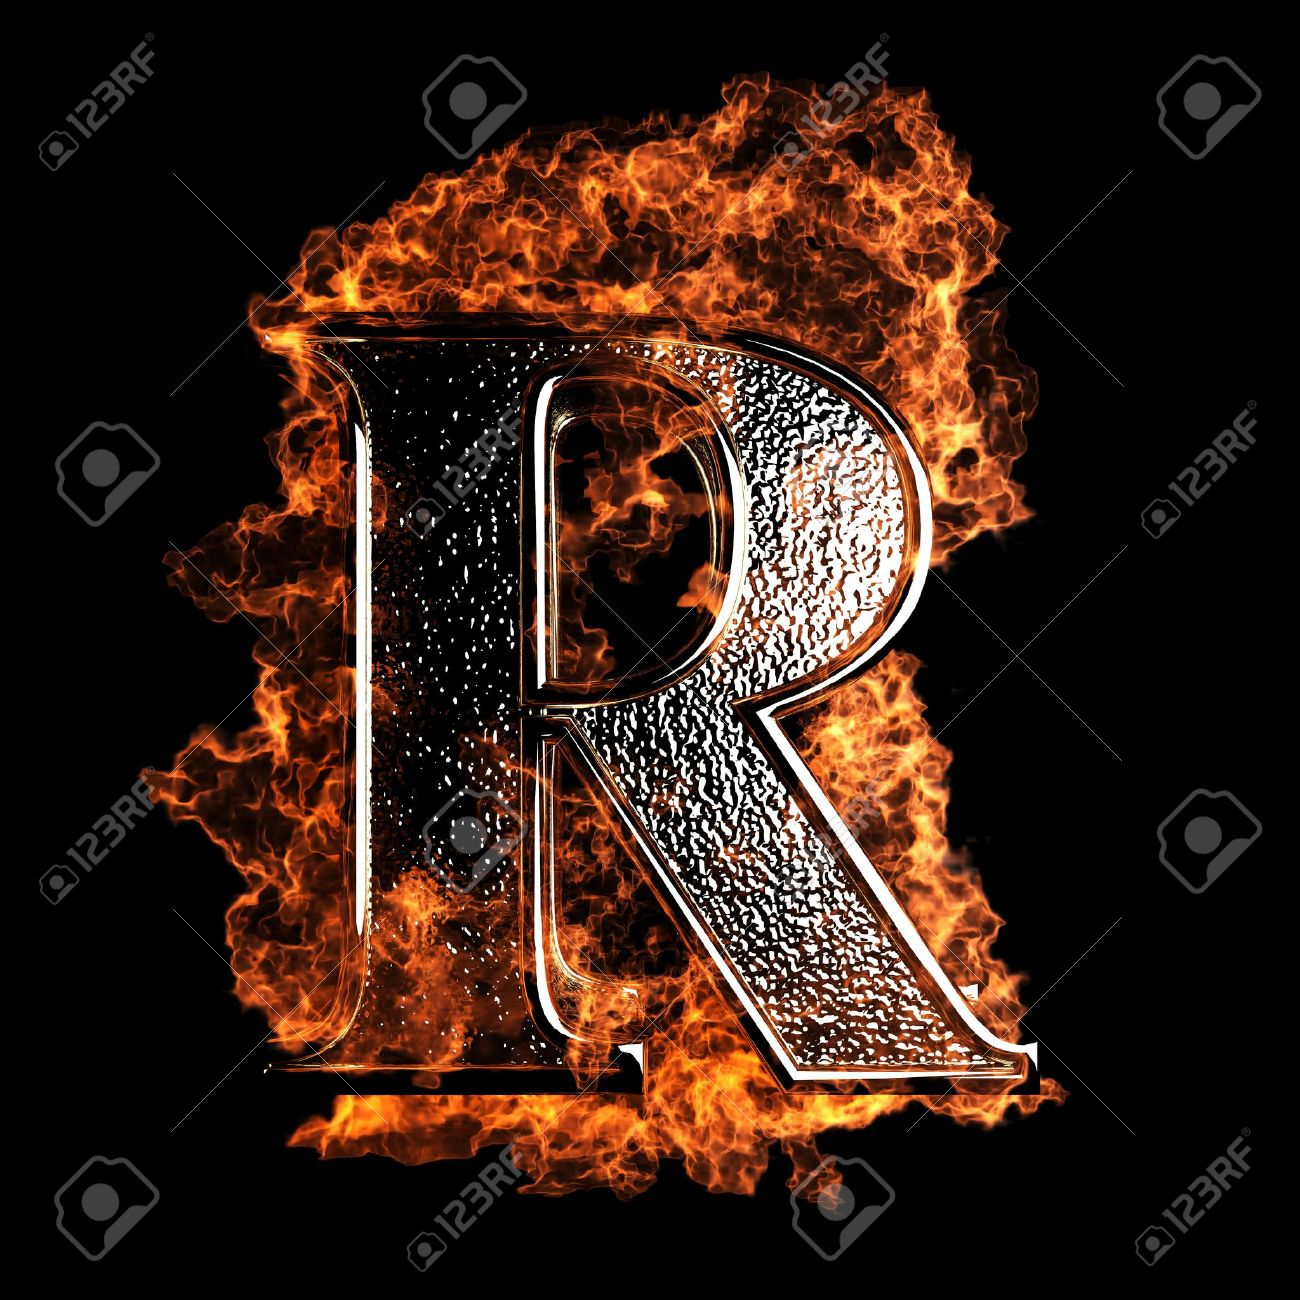 Burning letter made in 3d graphics stock photo picture and royalty burning letter made in 3d graphics stock photo 12870709 altavistaventures Image collections